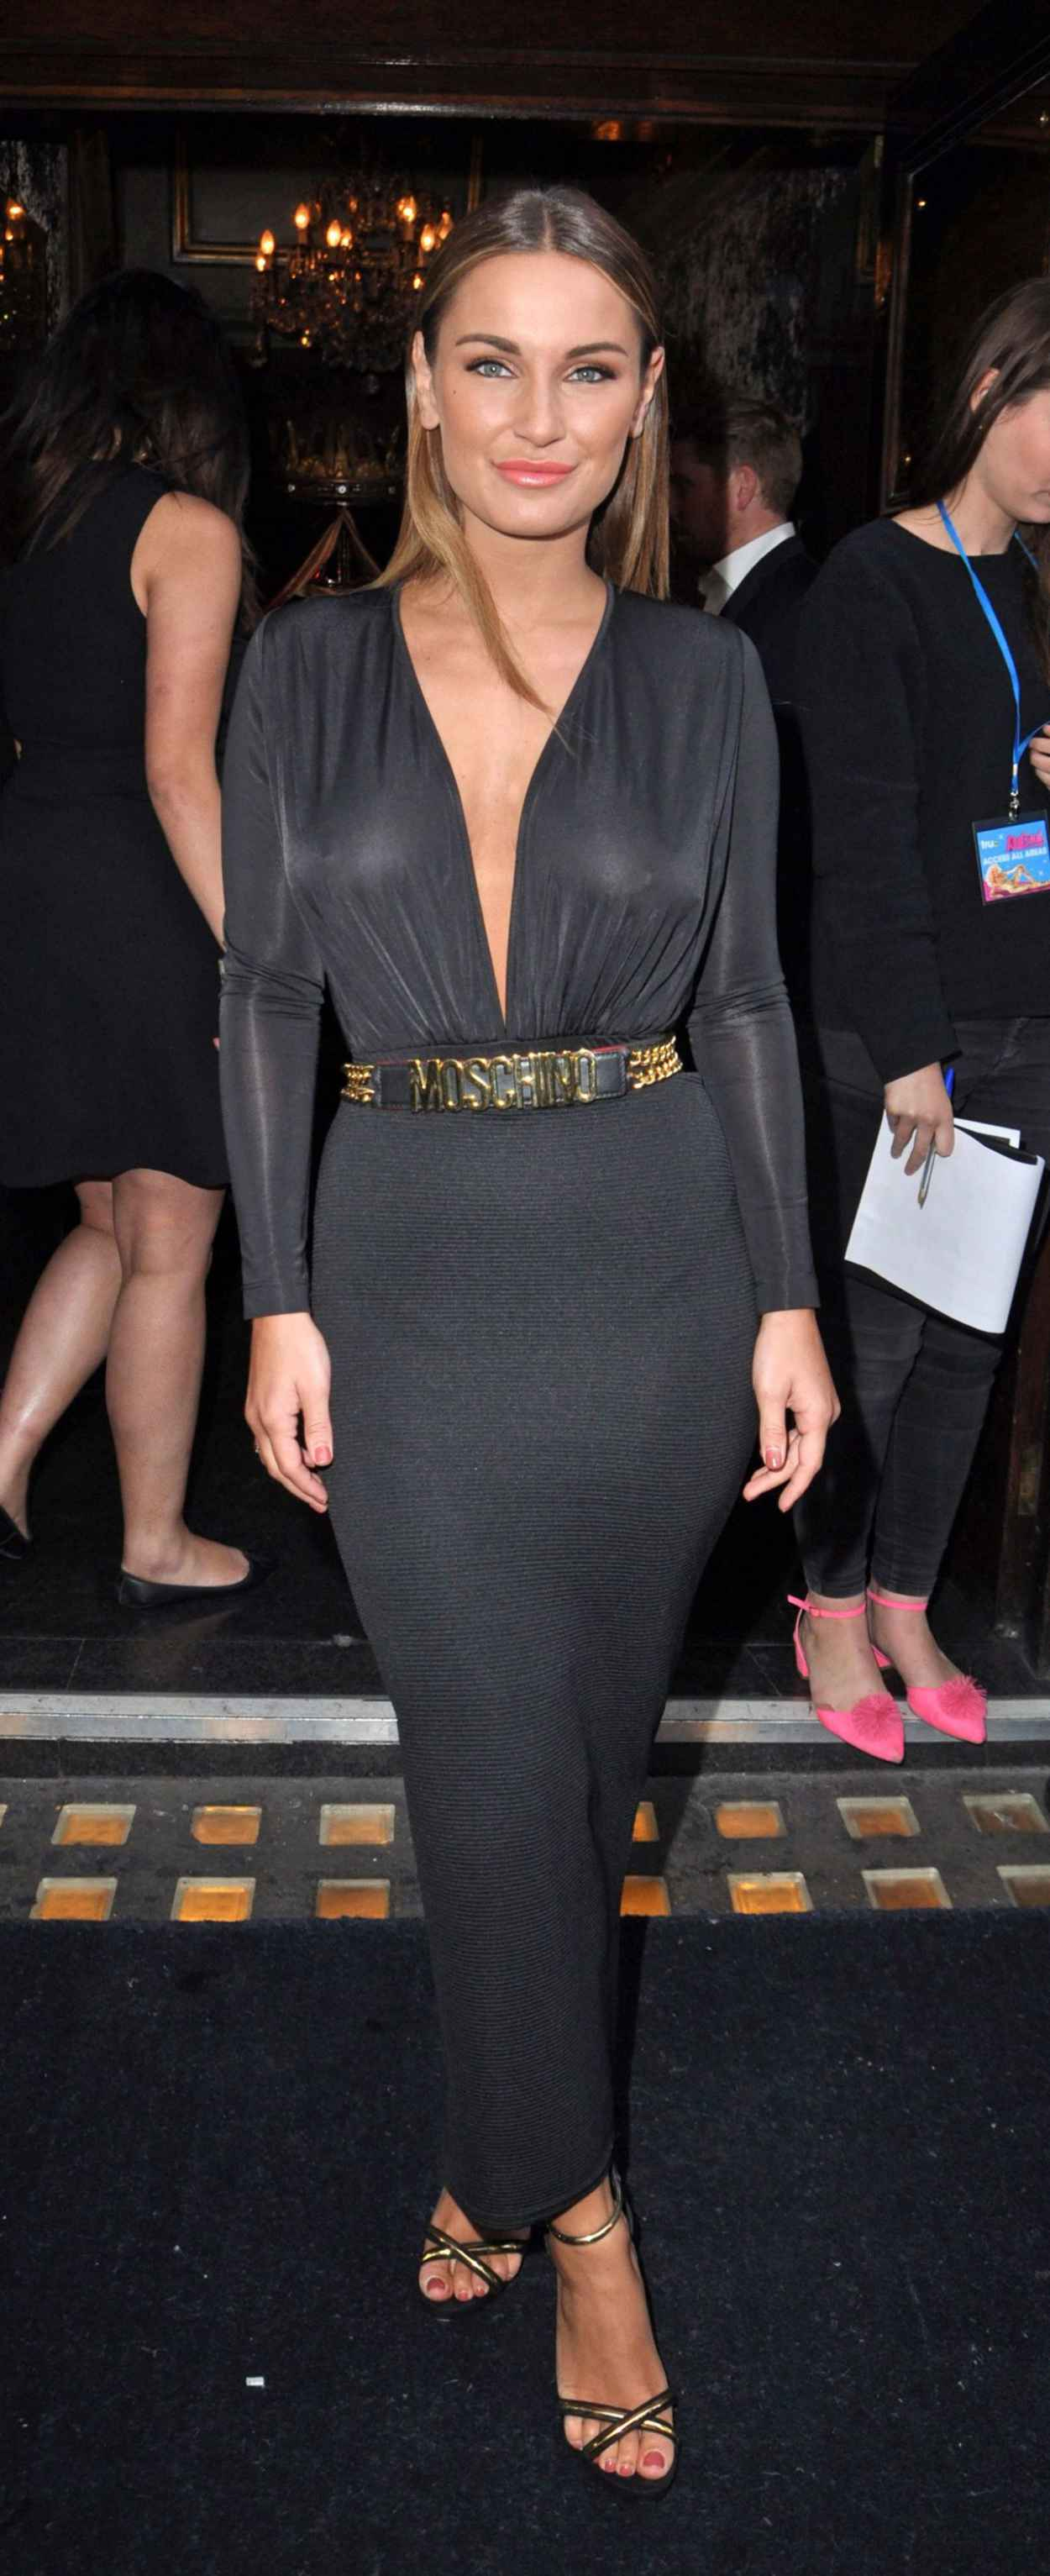 Sam Faiers at RuPauls Drag Race in London, june 2015-4